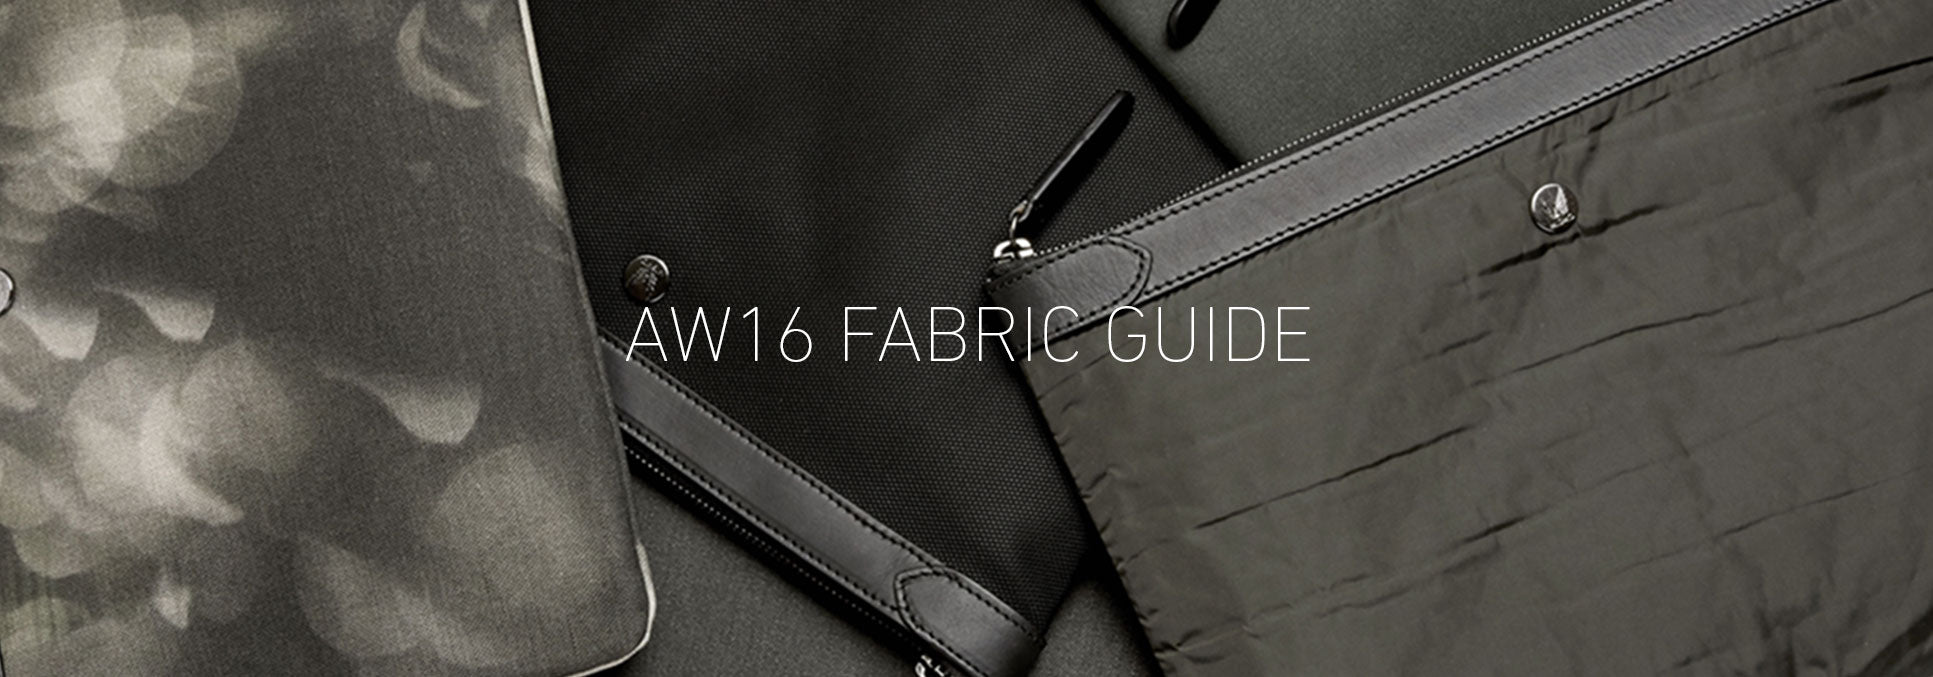 AW16 Fabric Guide